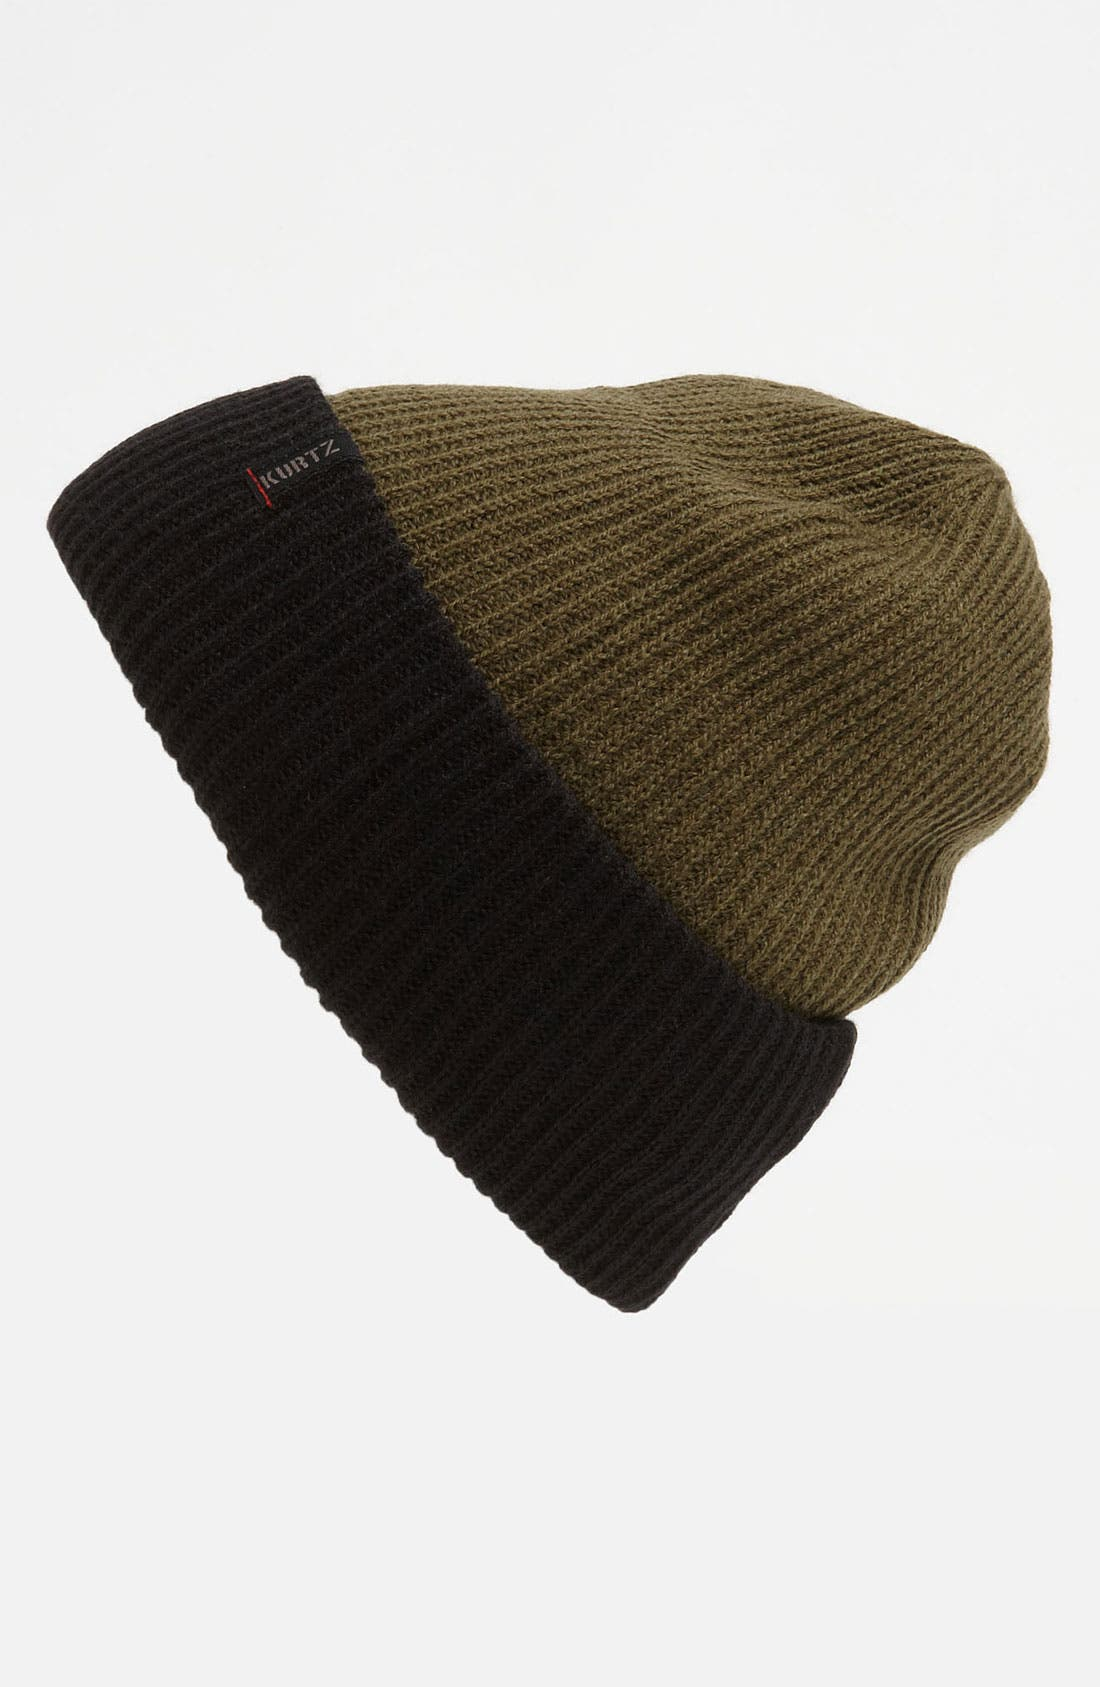 Alternate Image 1 Selected - A. Kurtz 'Wayne' 4-in-1 Reversible Wool Blend Beanie